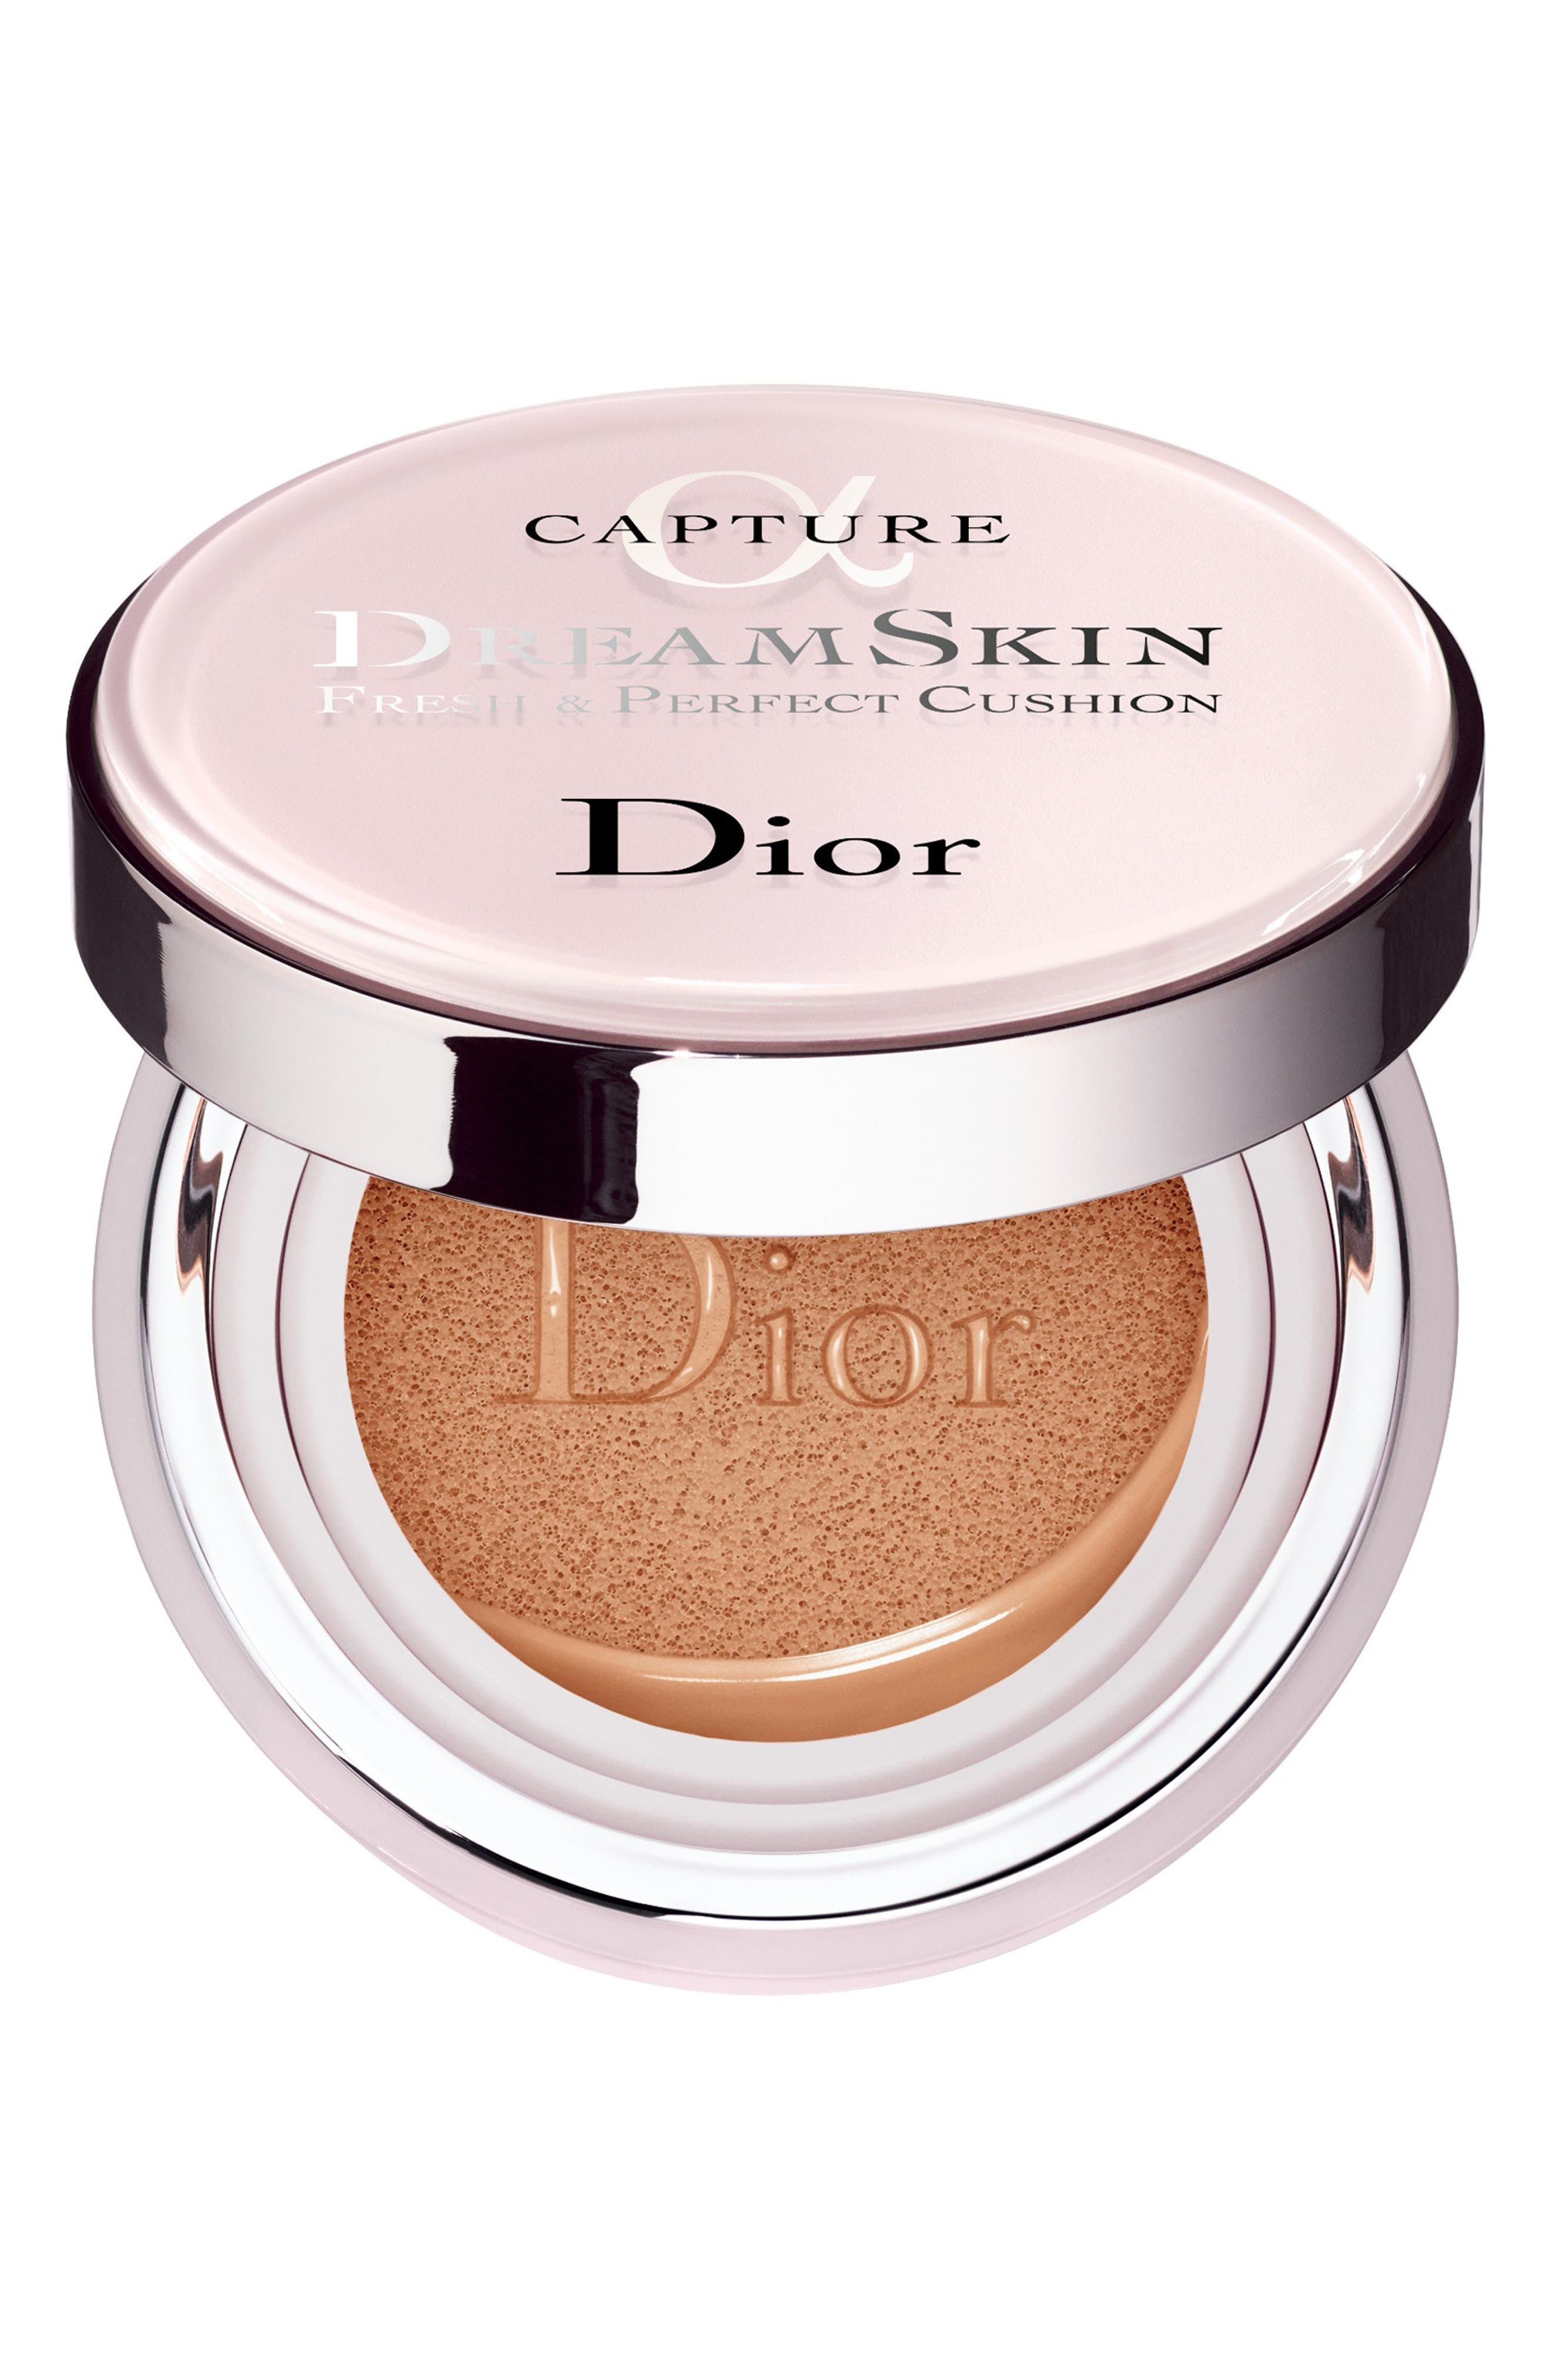 DIOR DreamSkin Fresh & Perfect Cushion Broad Spectrum SPF 50, Main, color, 025